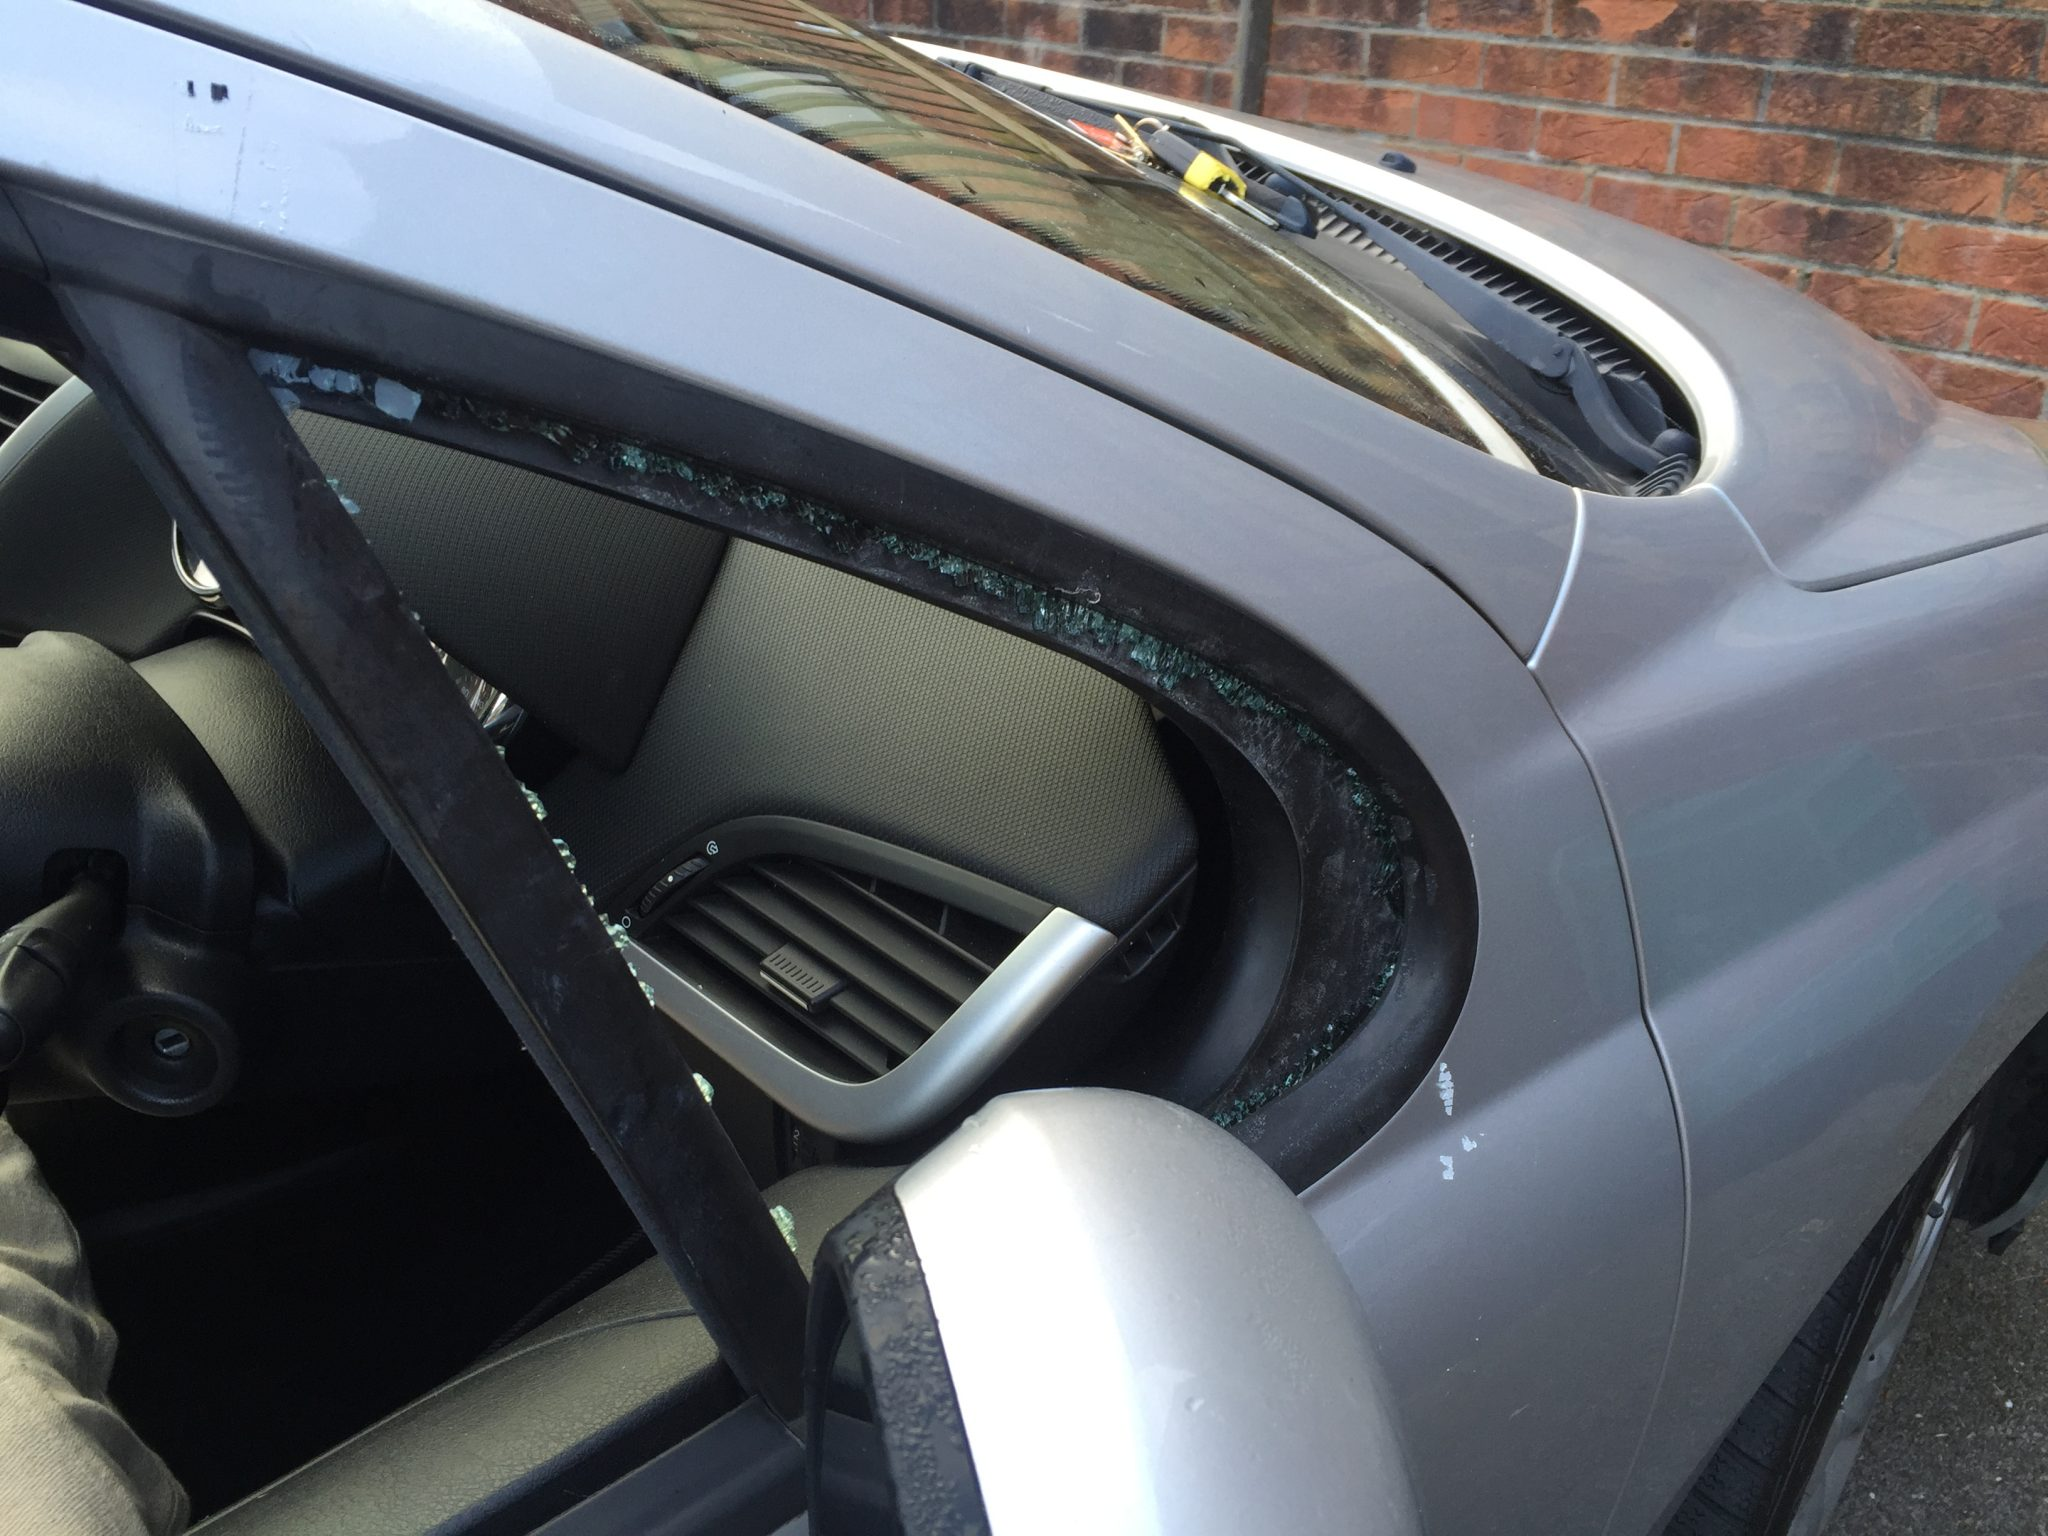 Peugeot 207 Side Window Smashed